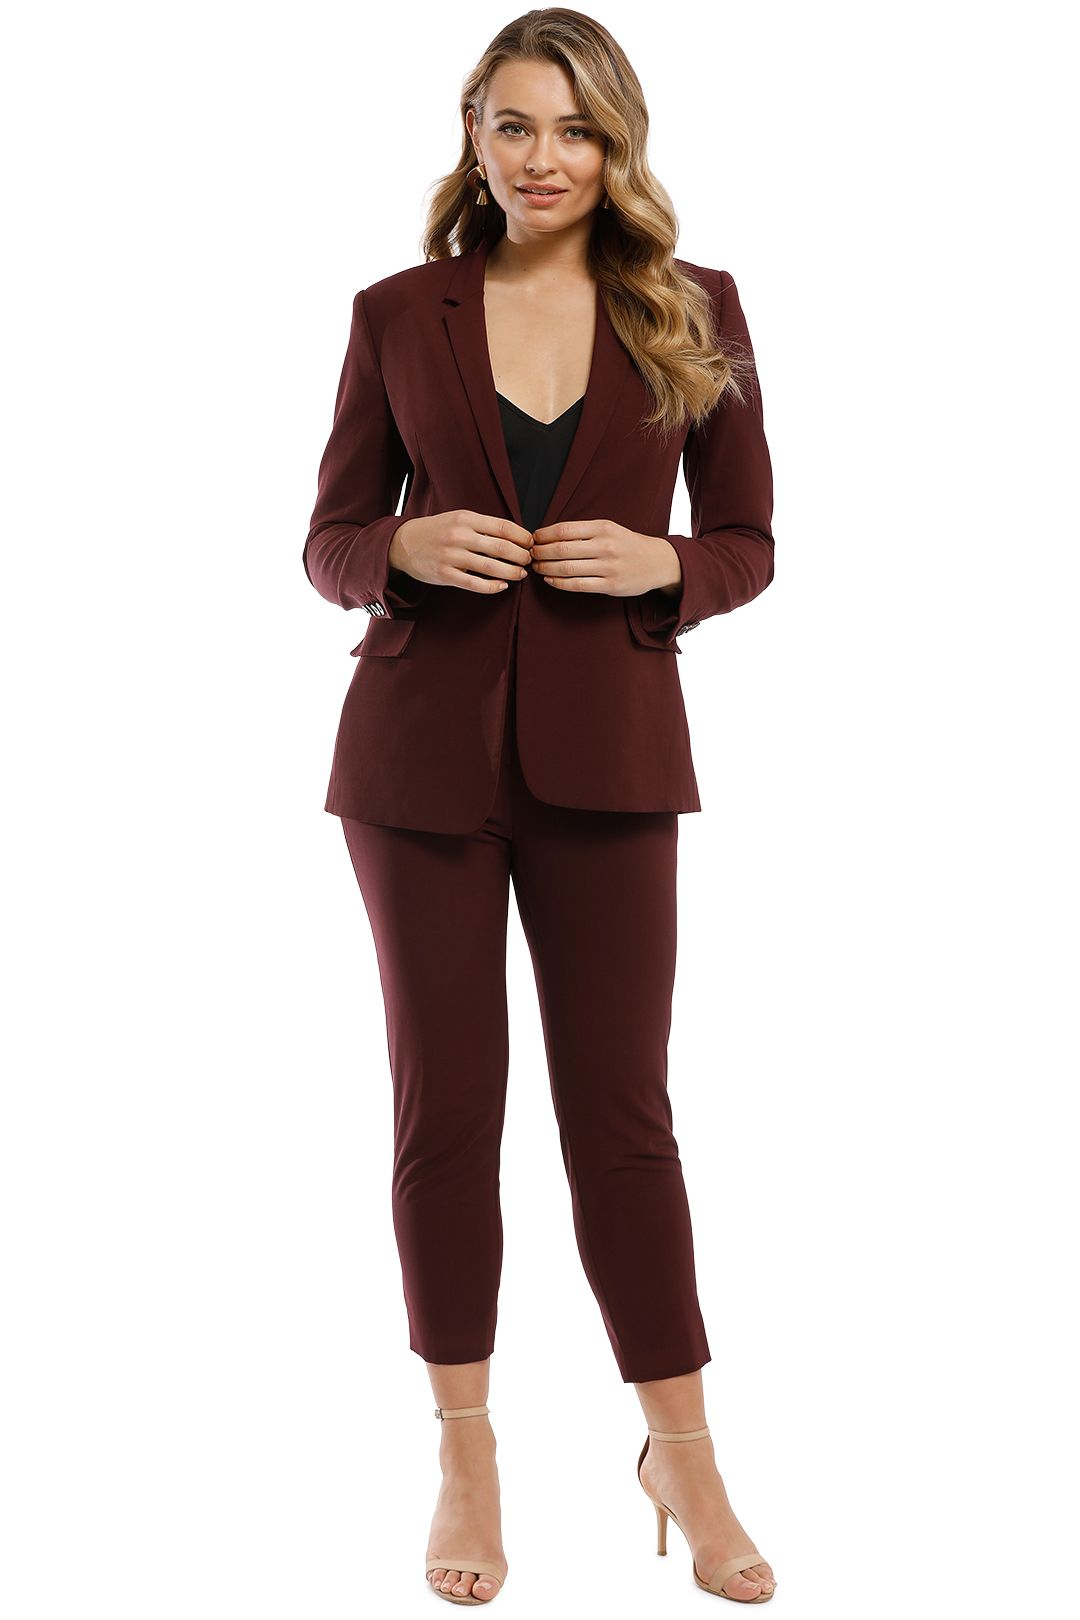 Theory - Essentials Jacket and Pant Set - Burgundy - Front